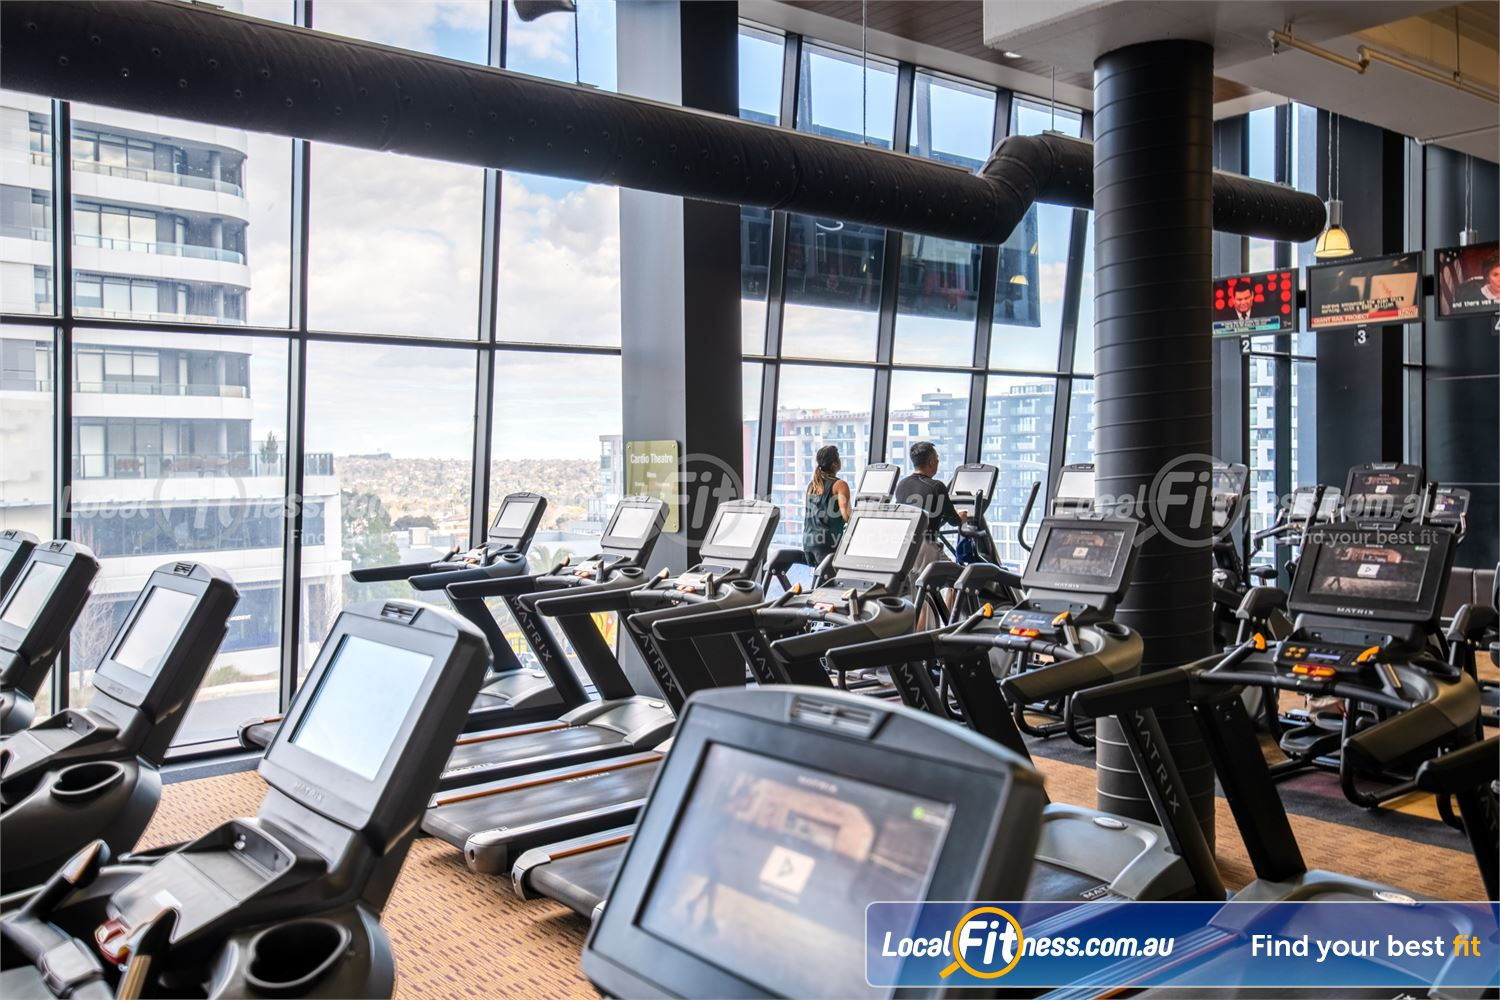 Fitness First Doncaster The latest cardio machine technology with personal entertainment consoles.